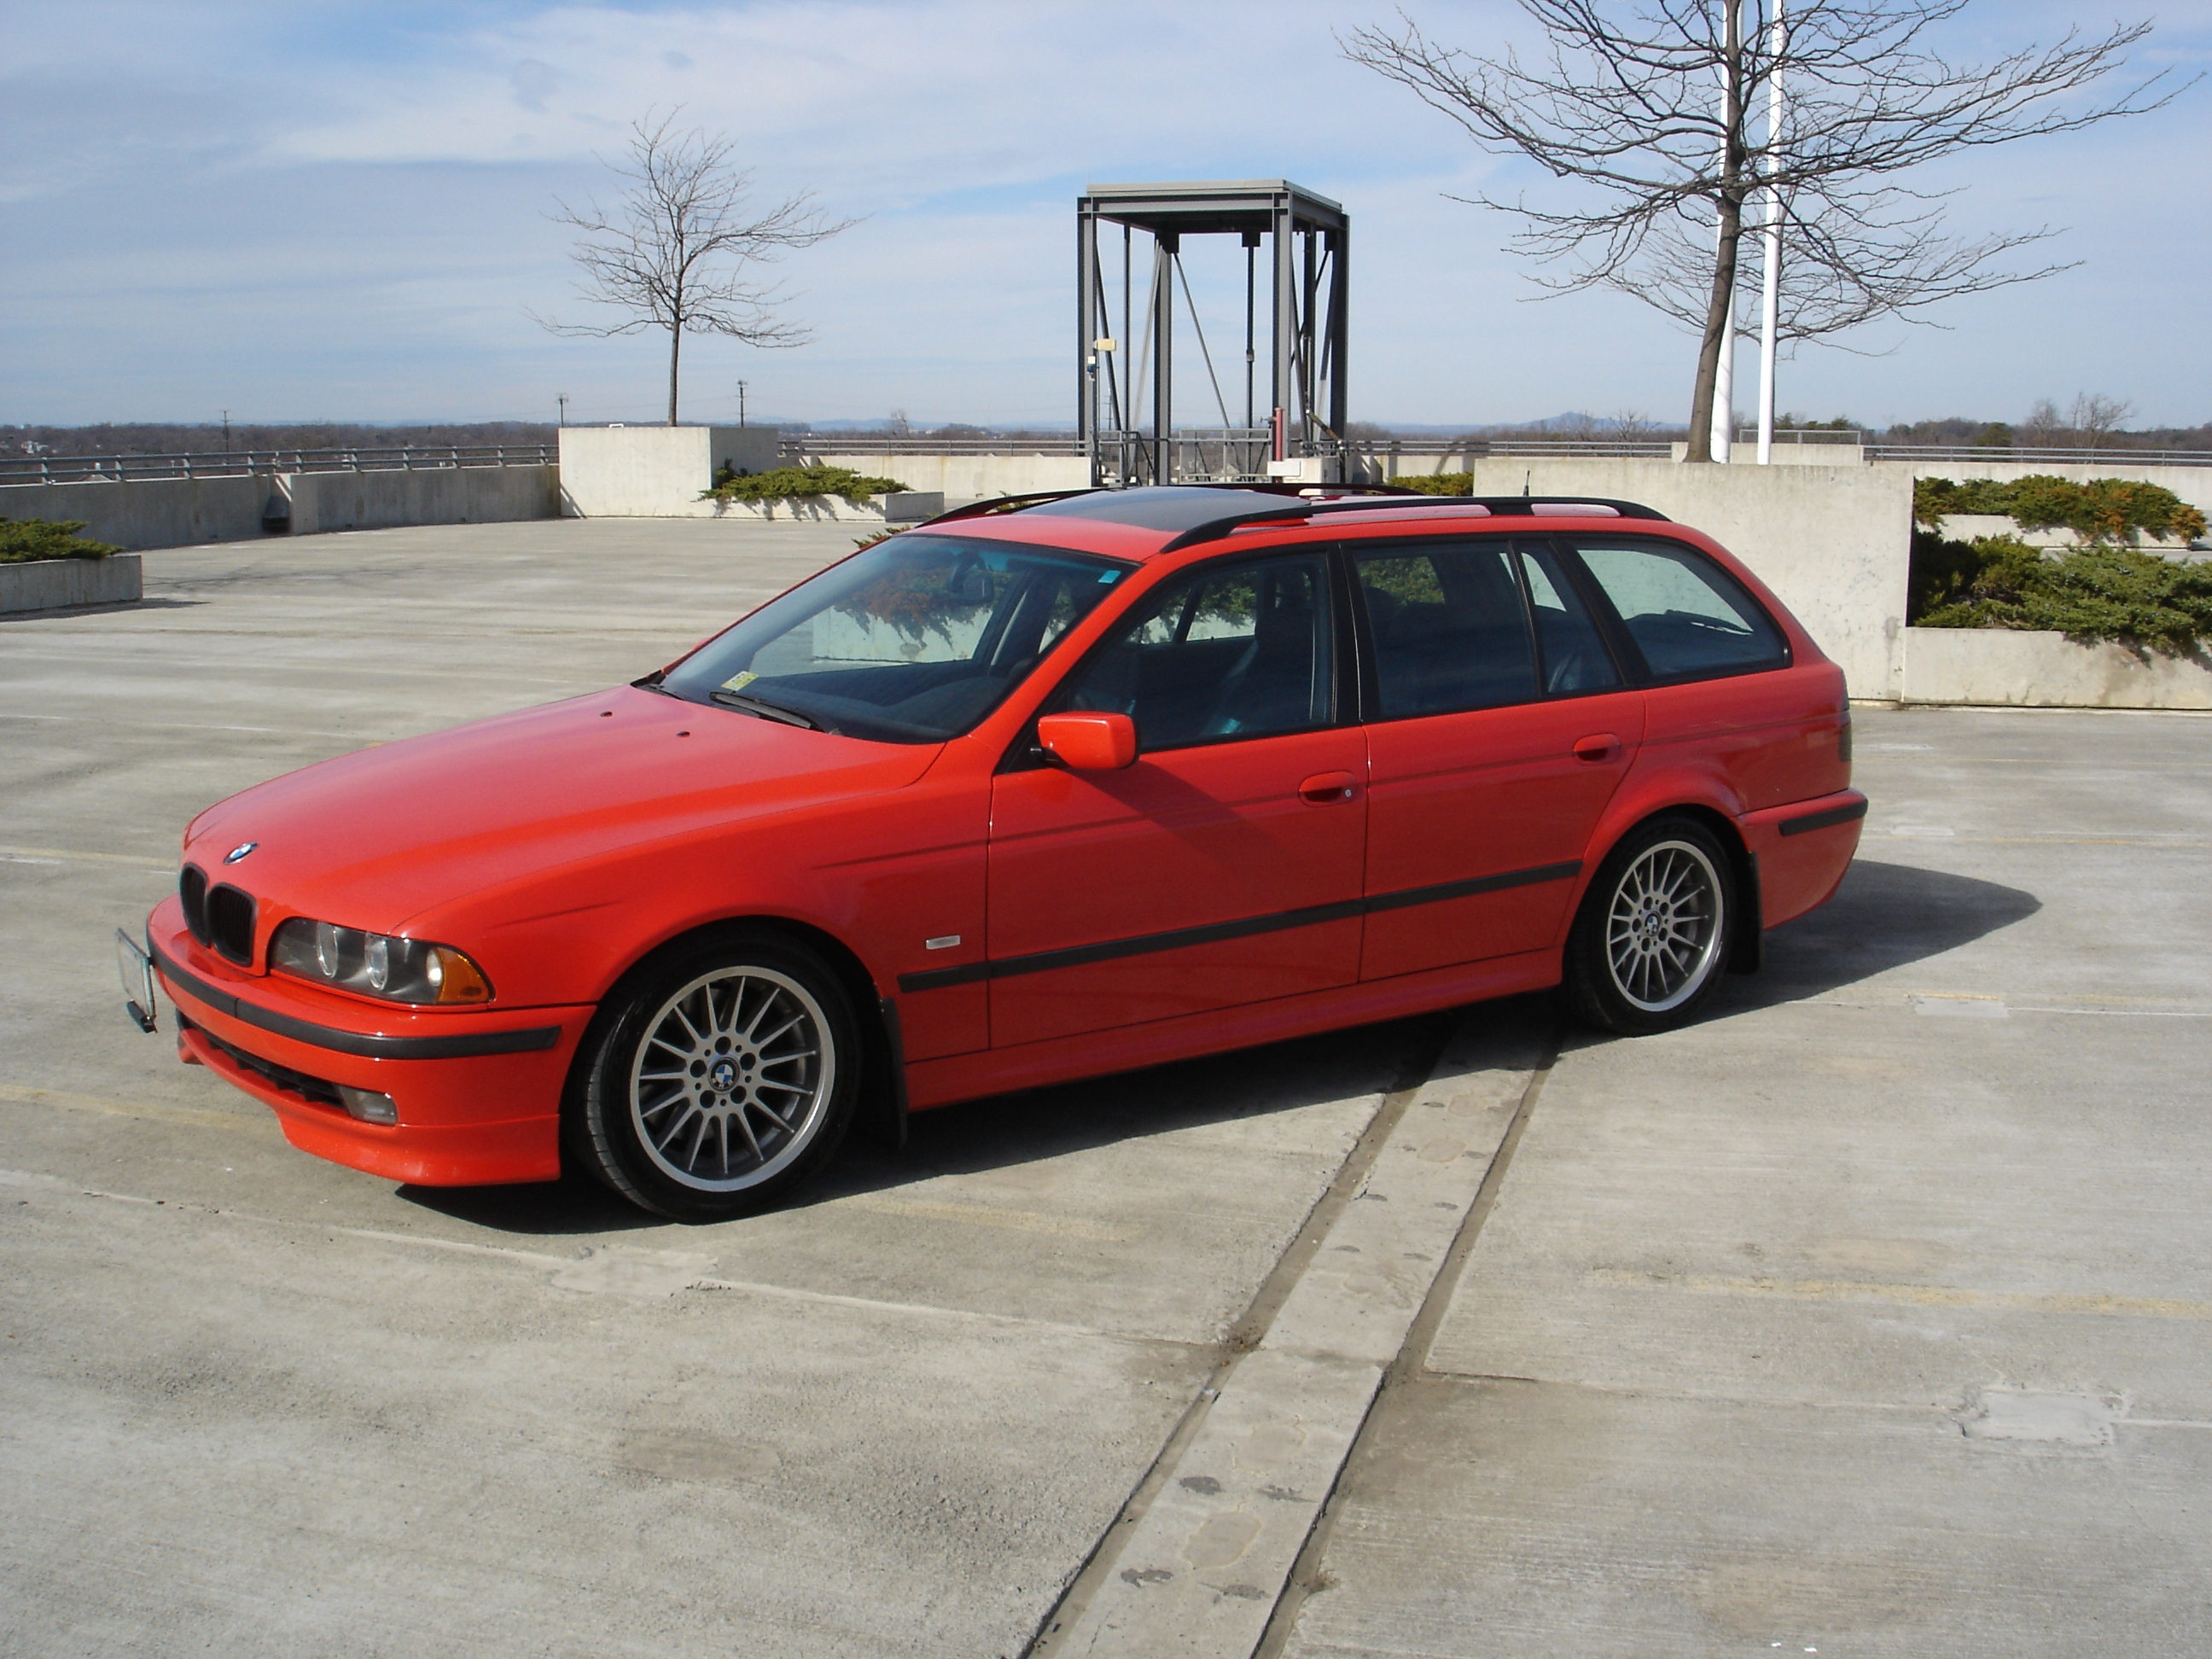 Johntee540's 1999 BMW 5 Series